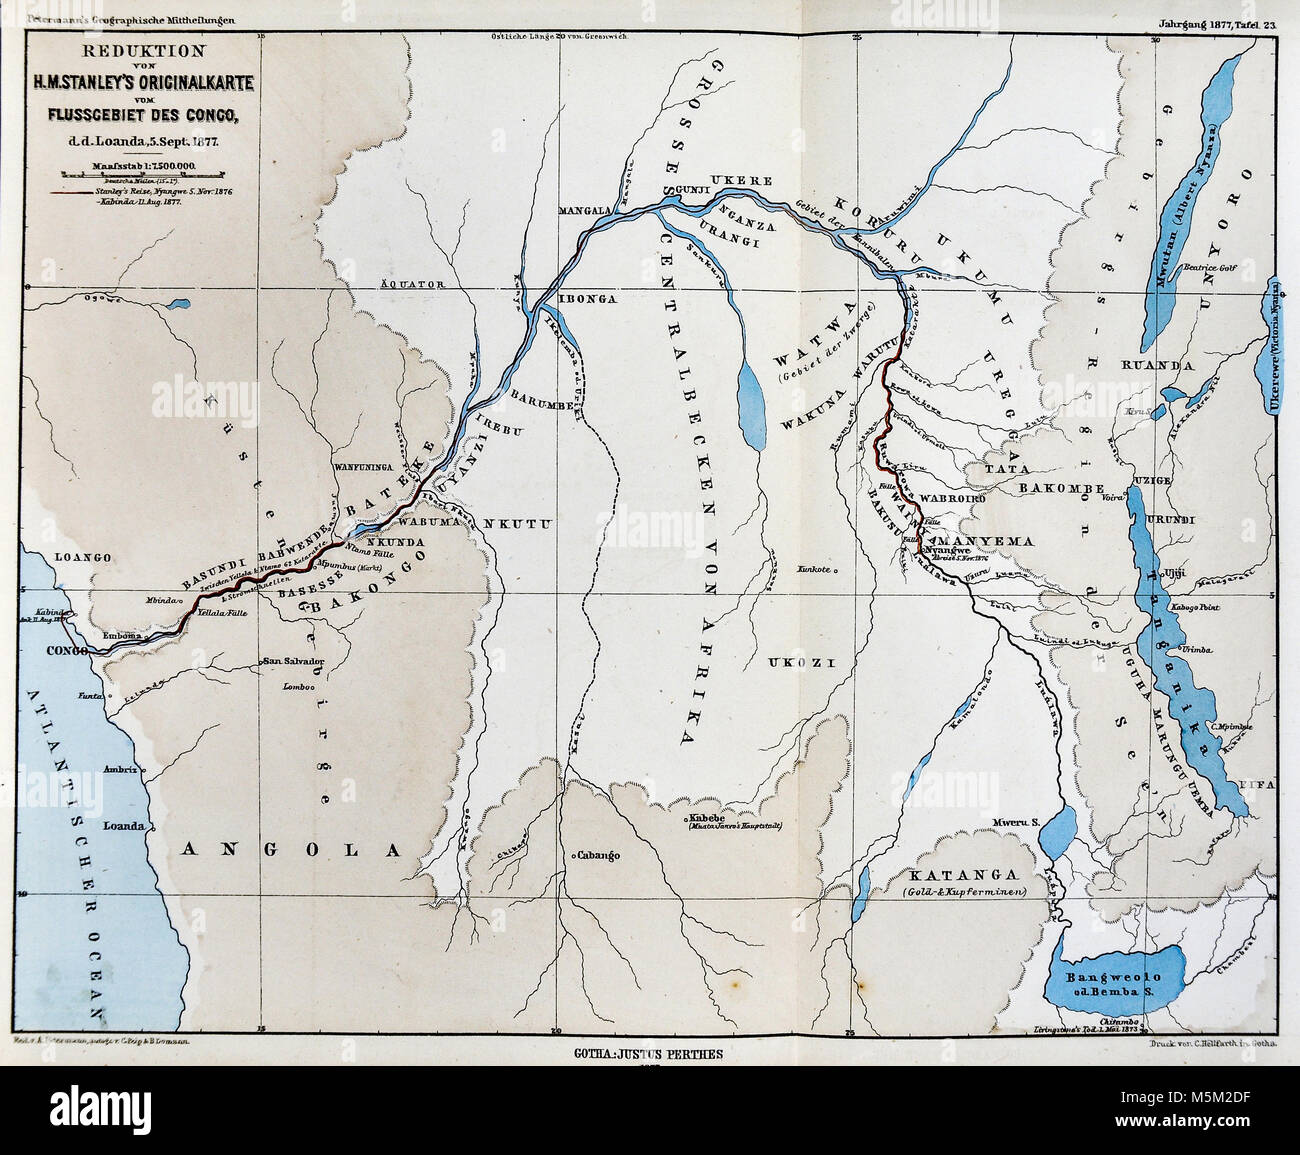 Map Of Africa Congo River.1877 Petermann Mittheilungen Map Of The Congo River In Central